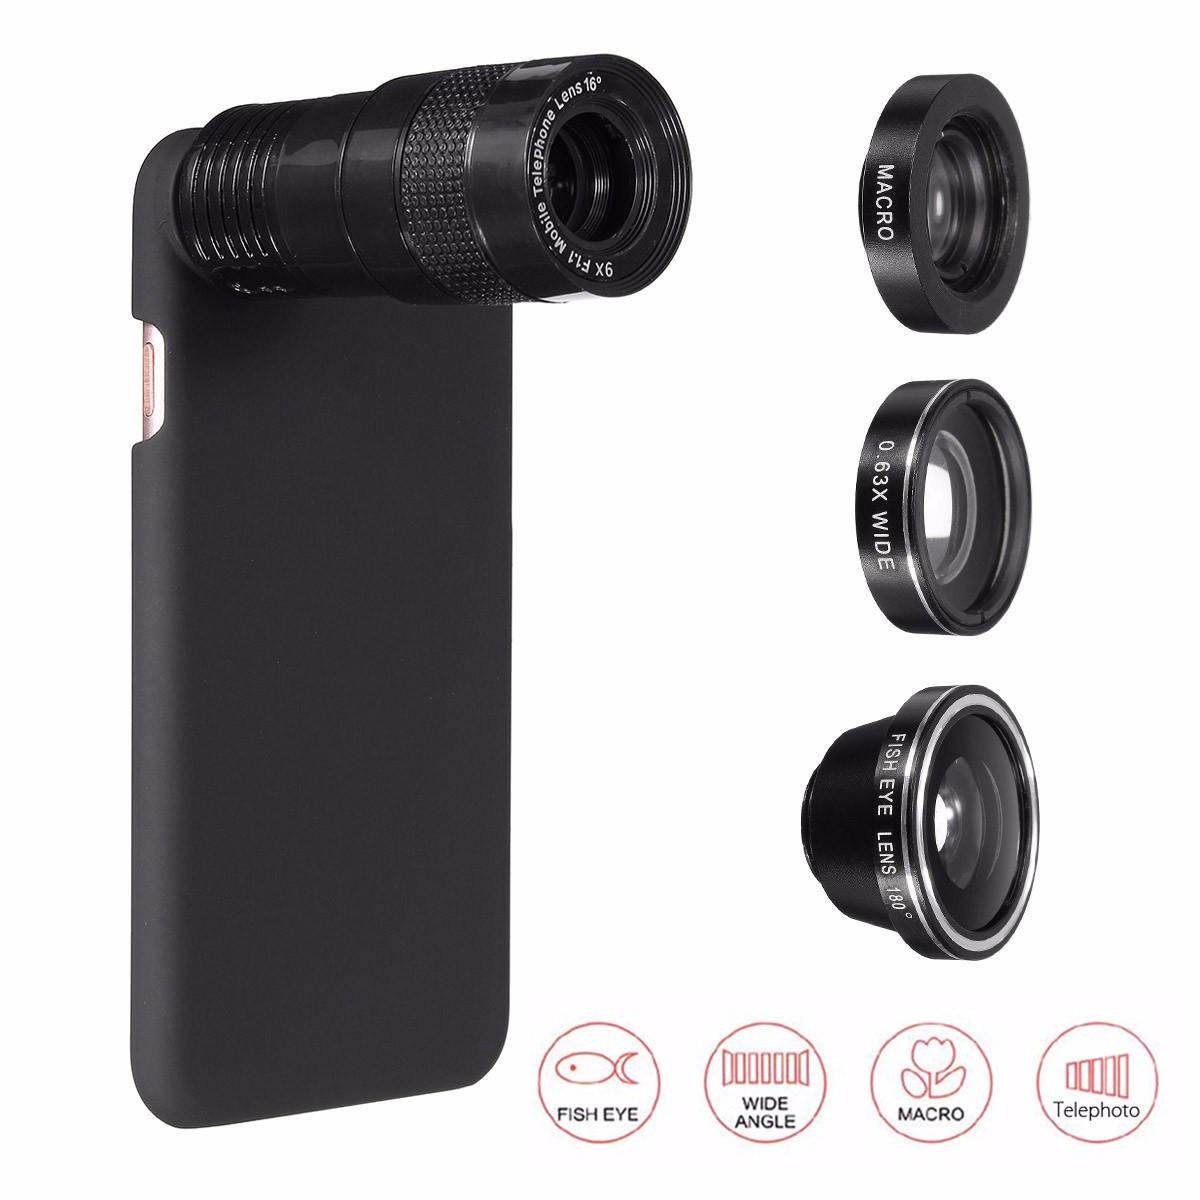 c69c0073451a9f 5-in-1 9x telephoto 0.63x wide angle macro fisheye lens + case for apple  iphone 7 plus Sale - Banggood.com